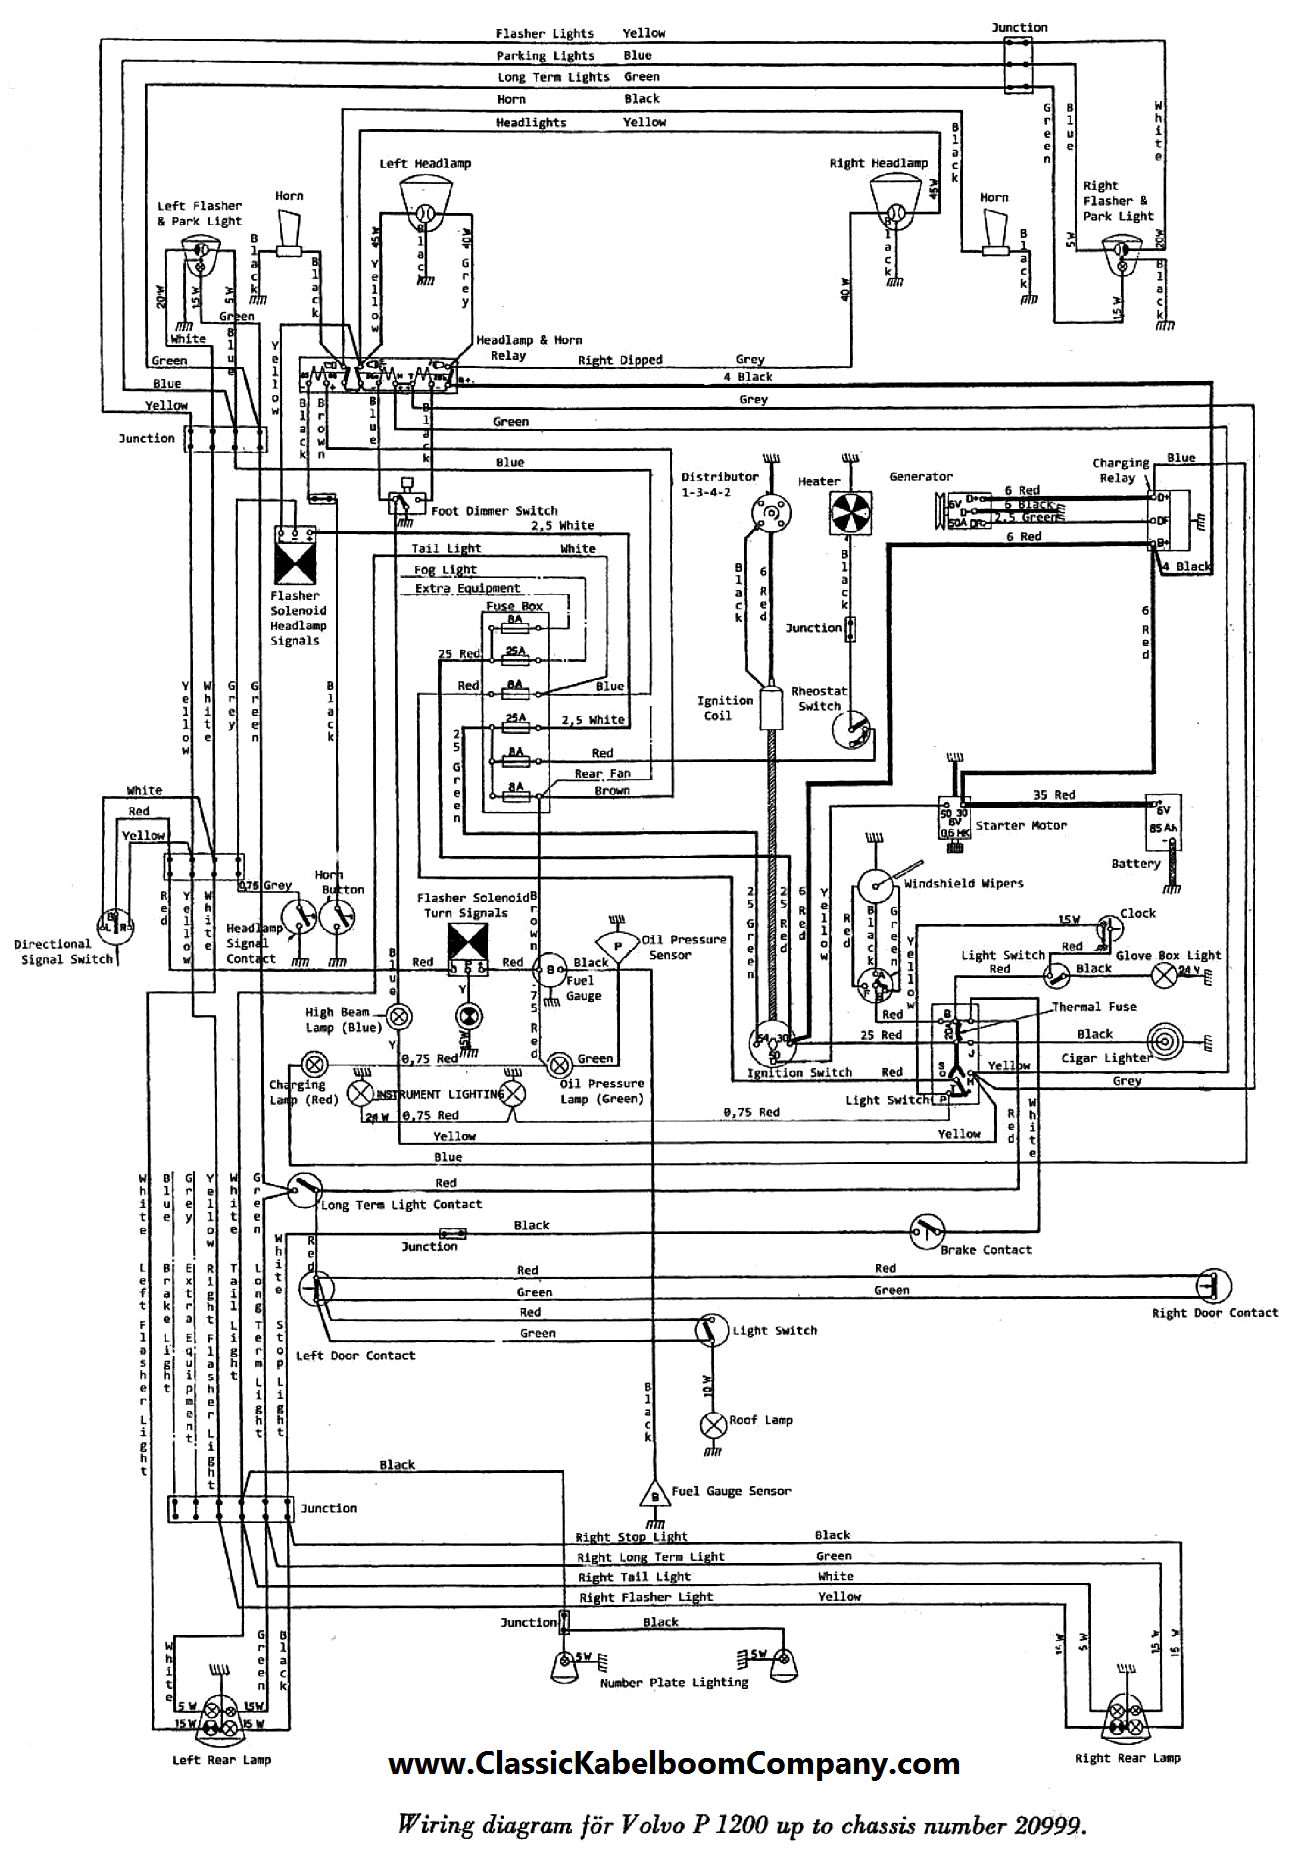 Amc Amx Wiring Diagram on 911 alternator wiring